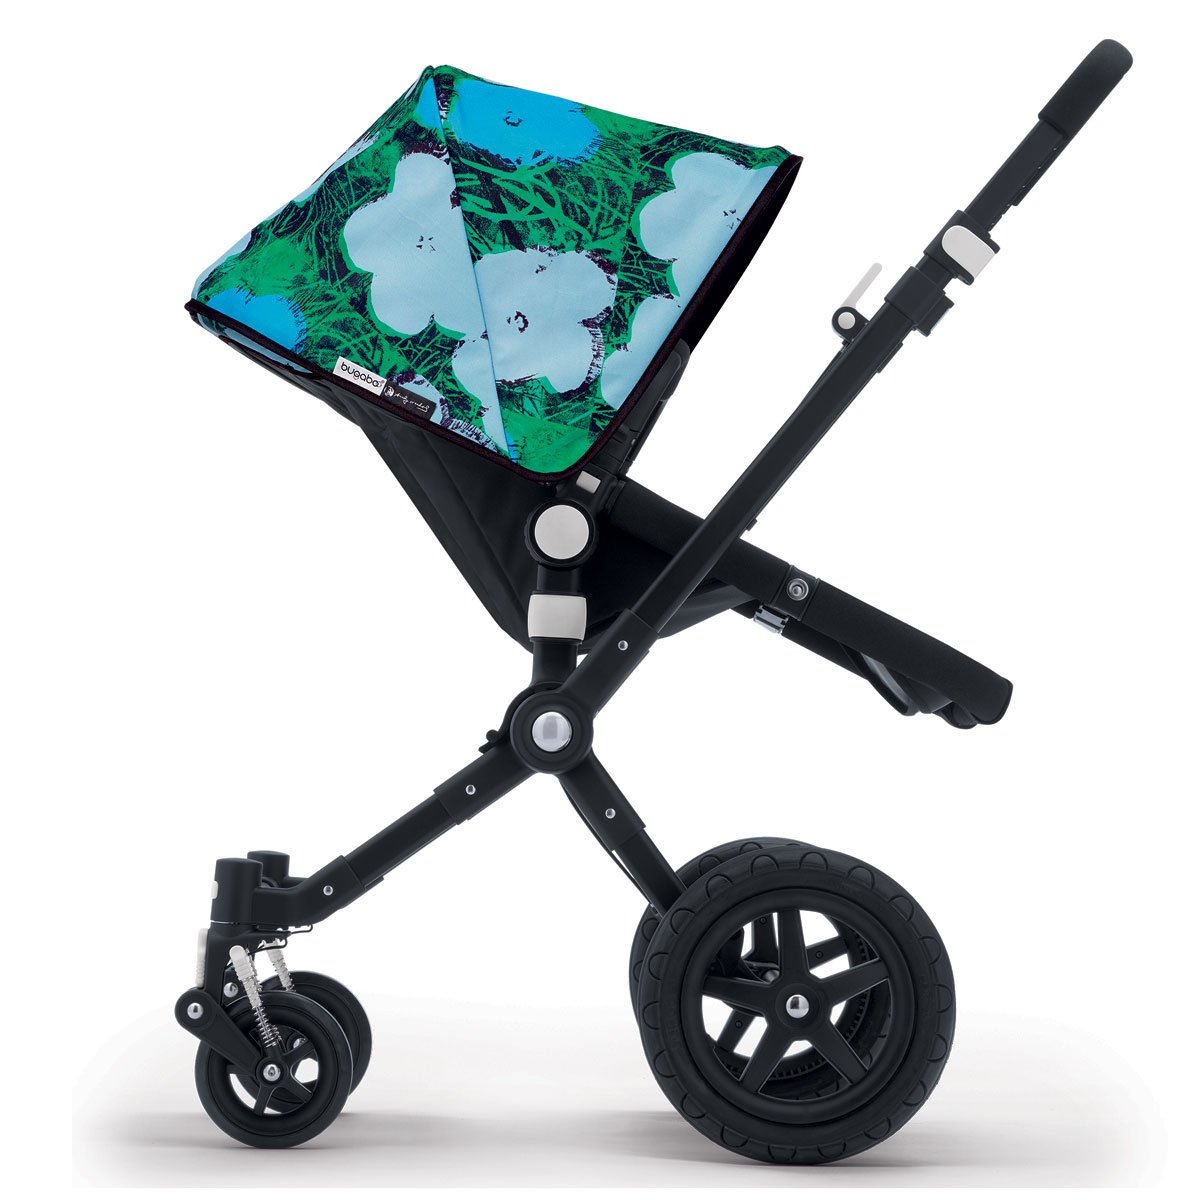 Amazon.com: Bugaboo Cameleon 3 (Andy Warhol Special Edition ...